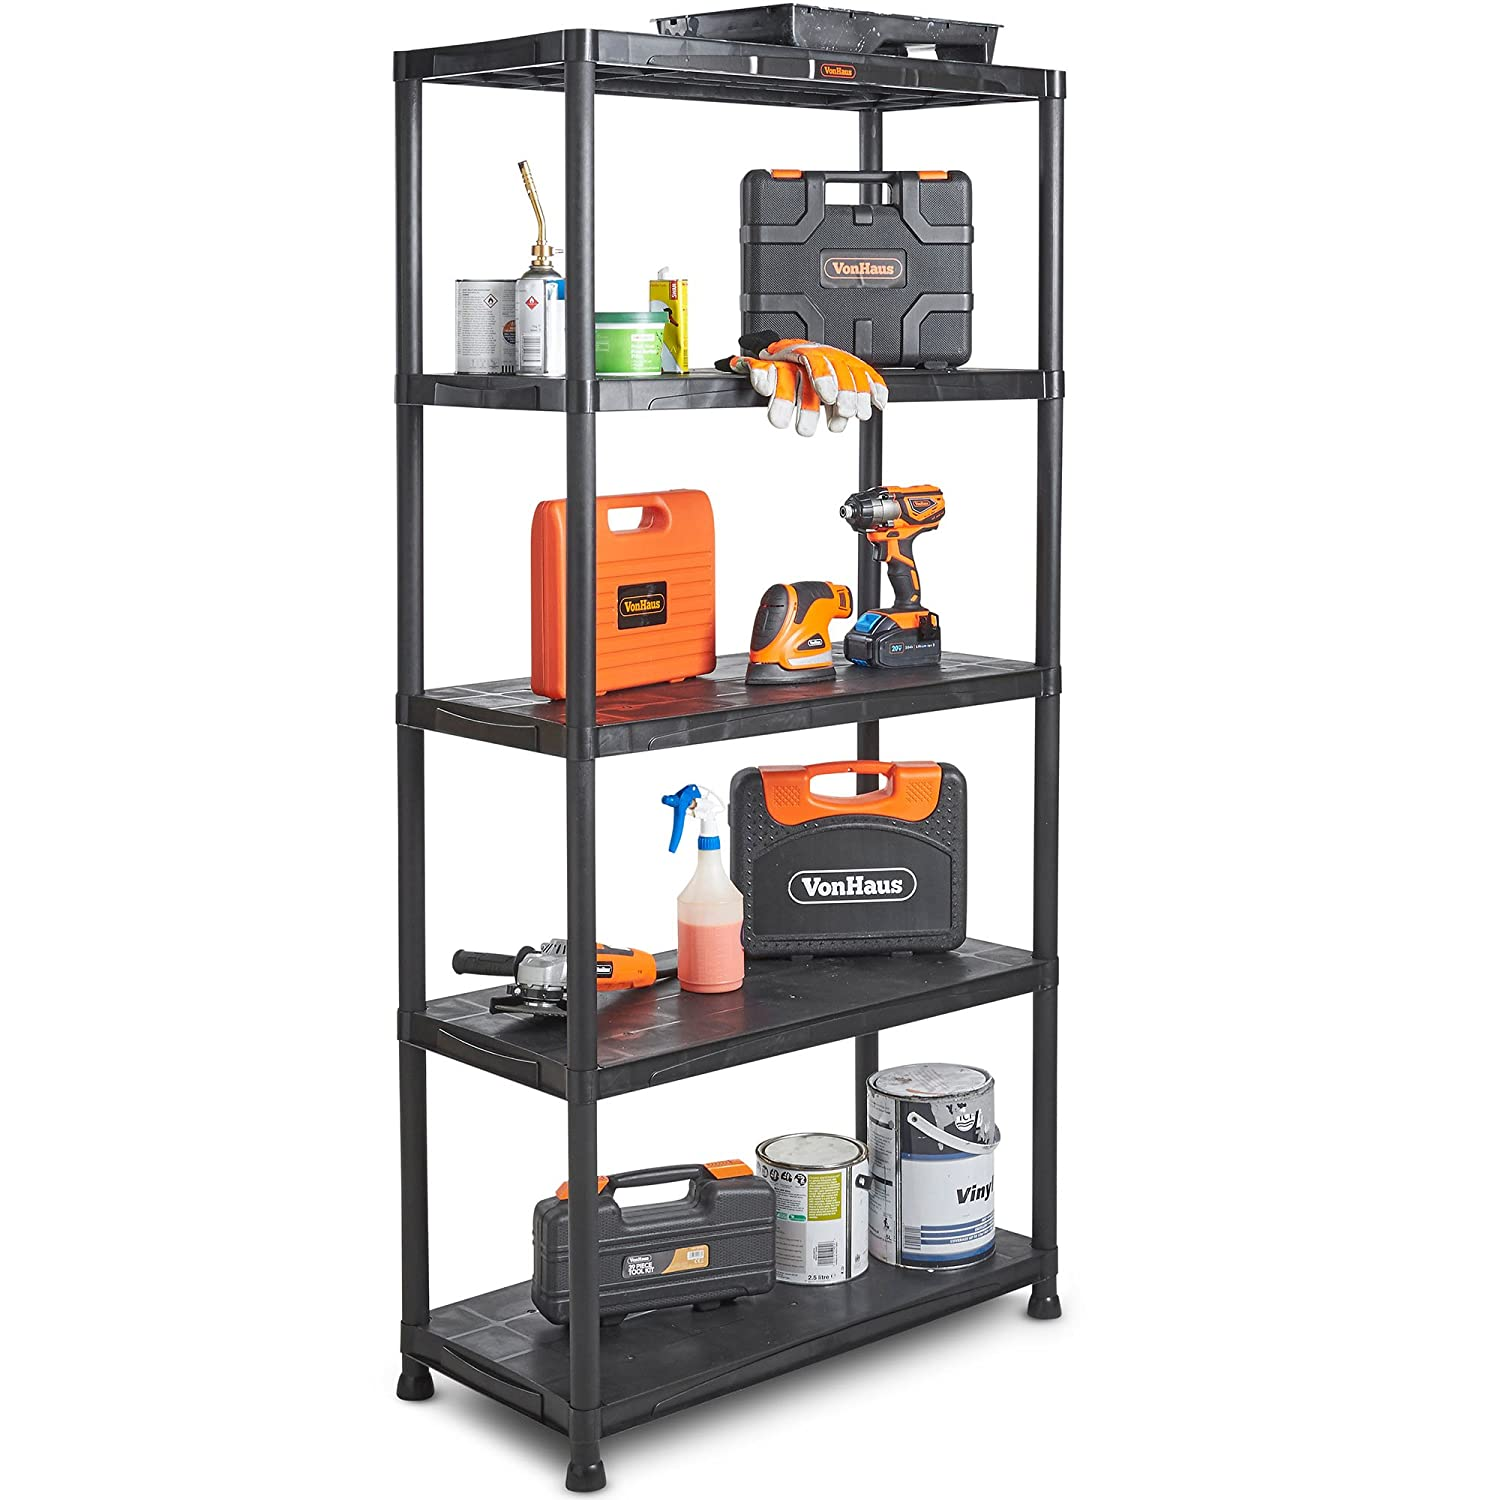 VonHaus 5 x 5 Tier Garage Shelving – Extra Wide Plastic Racking, Free Standing Shelves – 625KG Capacity 25KG per Shelf | 174cm H 420cm W 40cm D